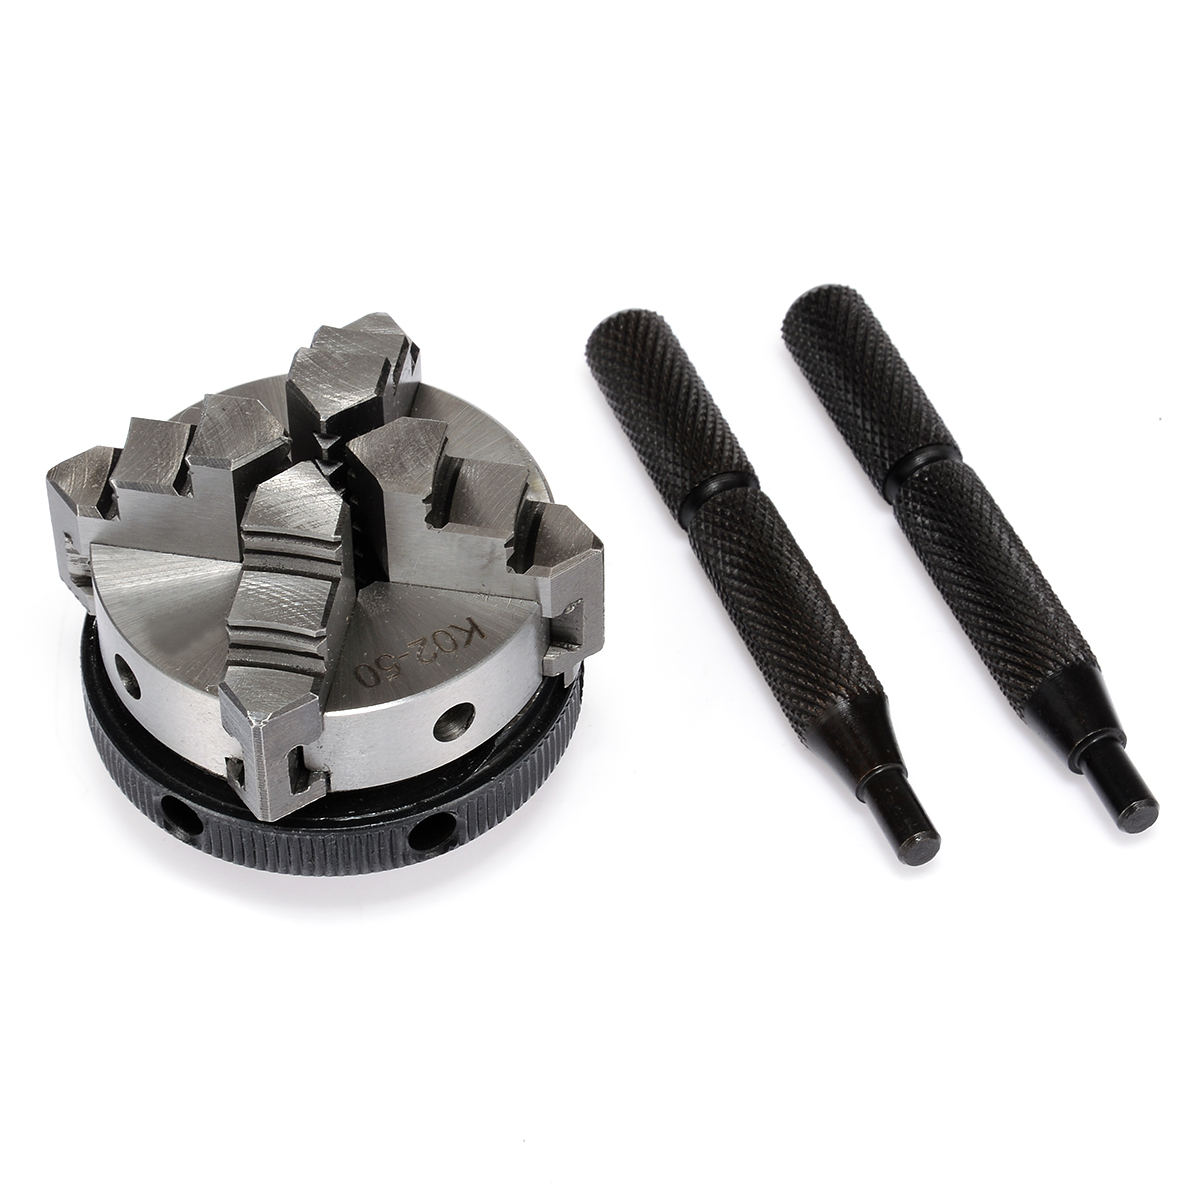 Mini K02-50 4 Jaw Lathe Chuck 2 inch M14 Self-Centering Thread Mount with 2pcs Lock Rod with High Hardness